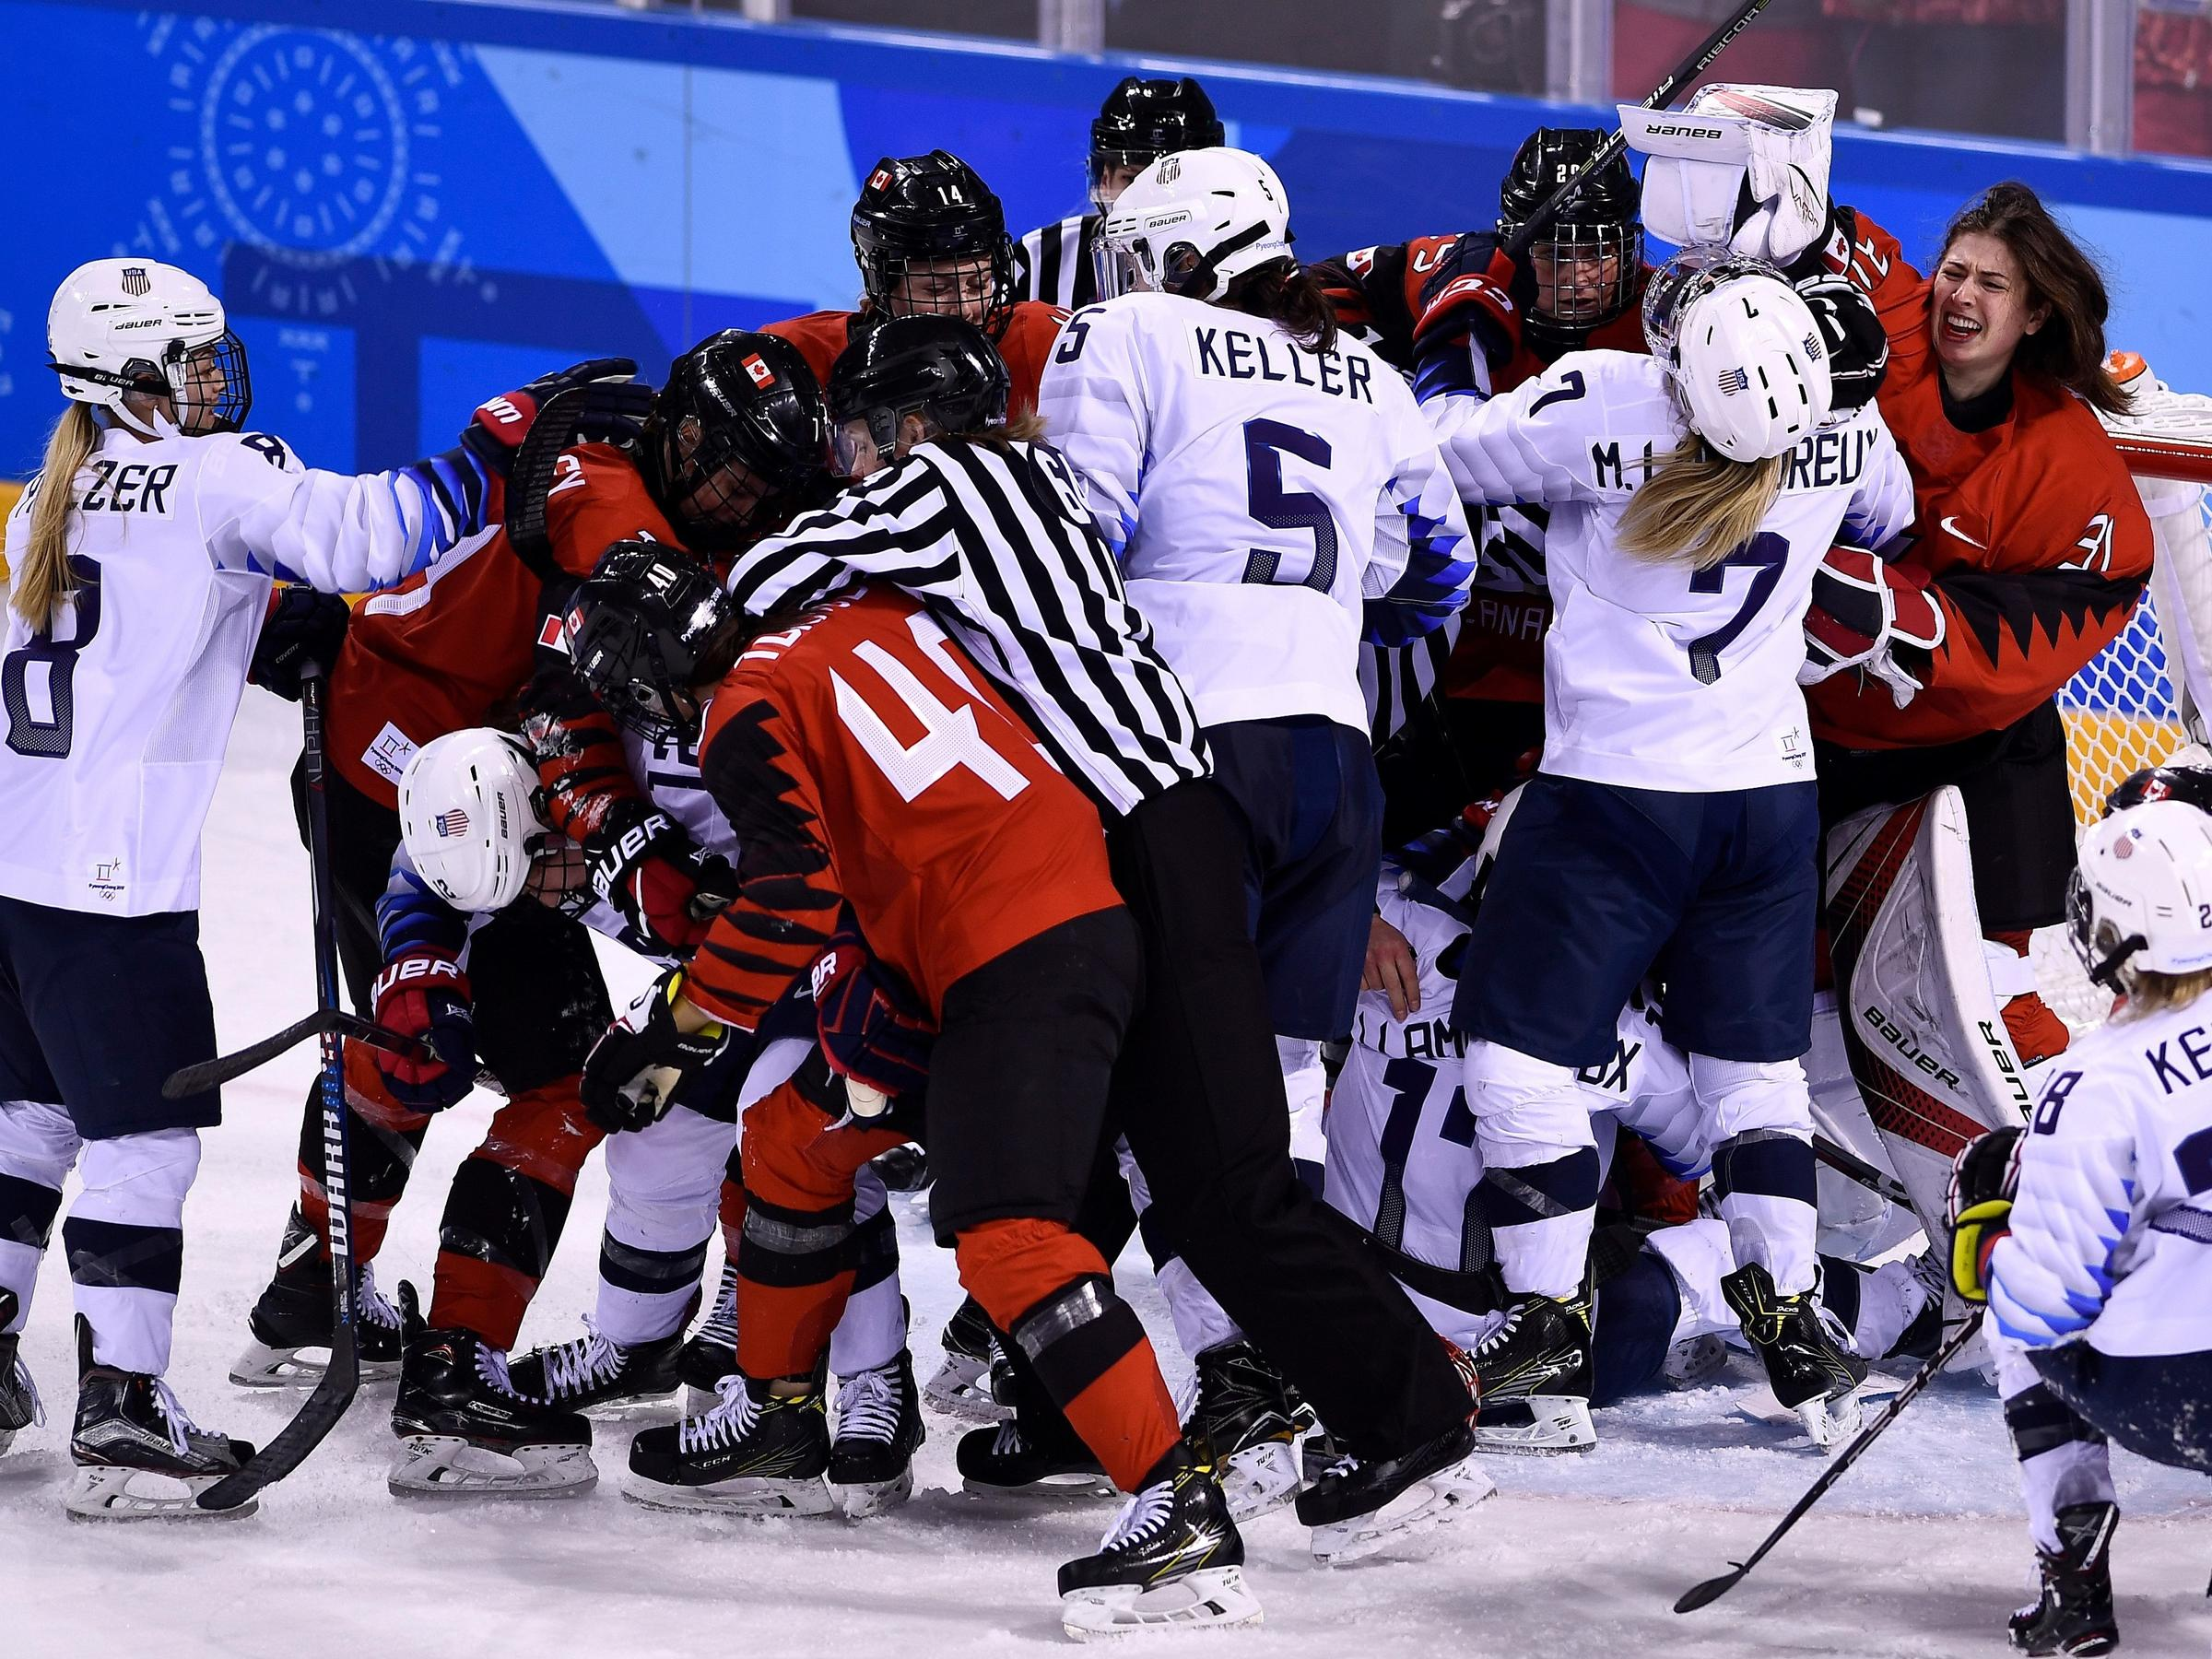 United States of America see off Canada in shootout to capture Olympic women's hockey gold